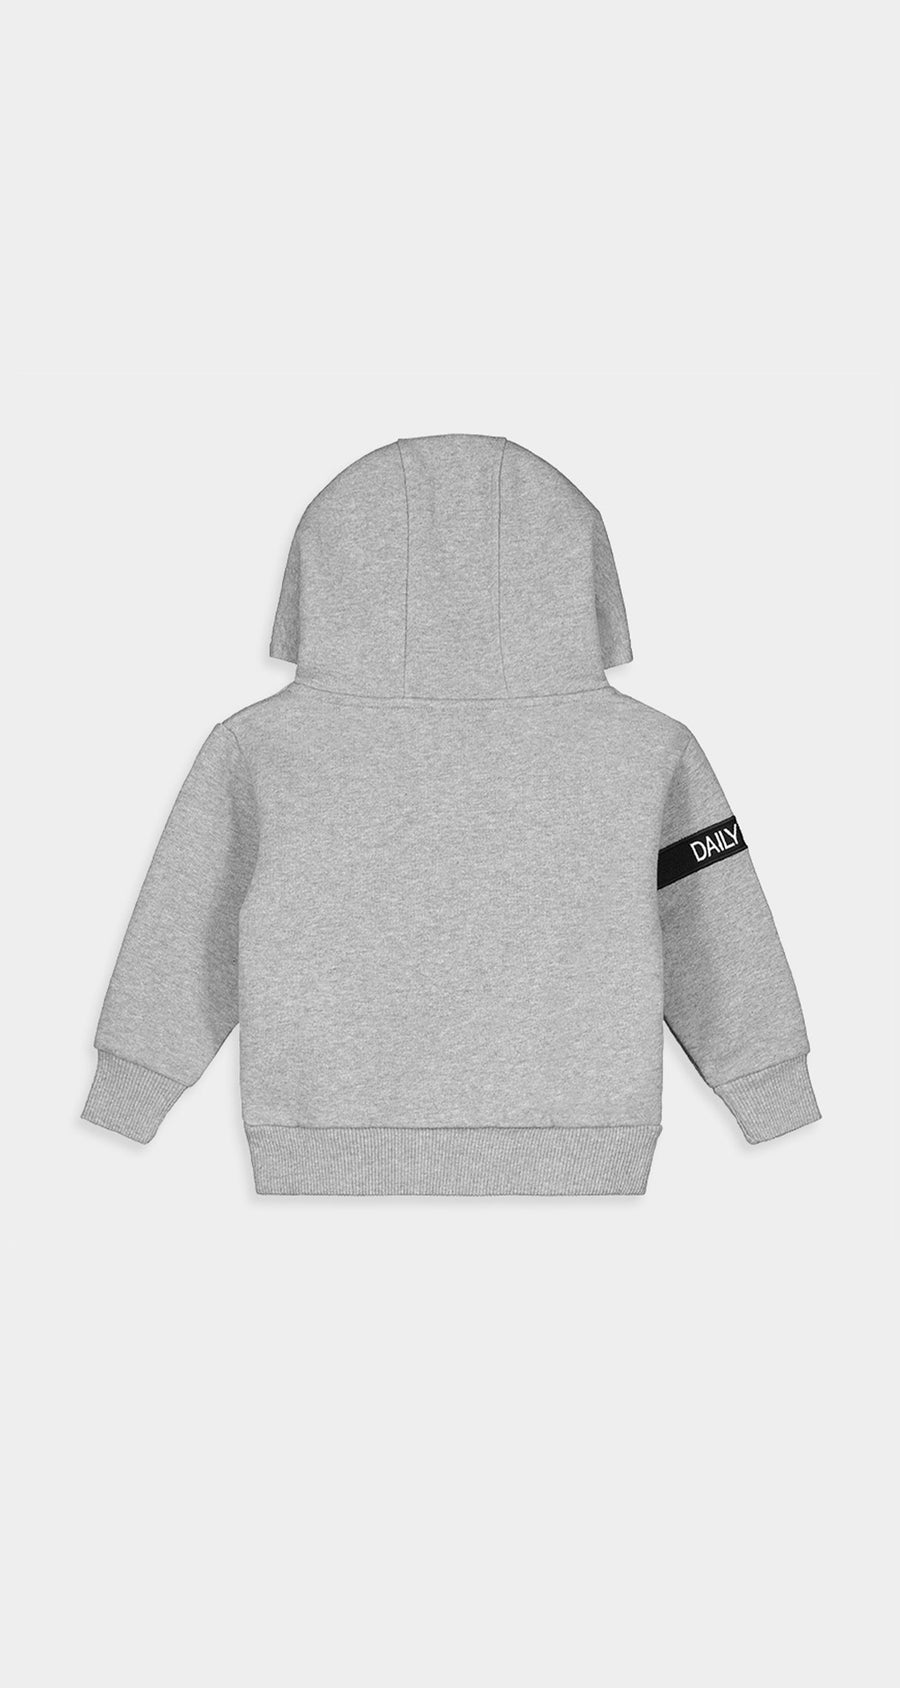 Daily Paper - Grey Kids Captain Hoody Rear